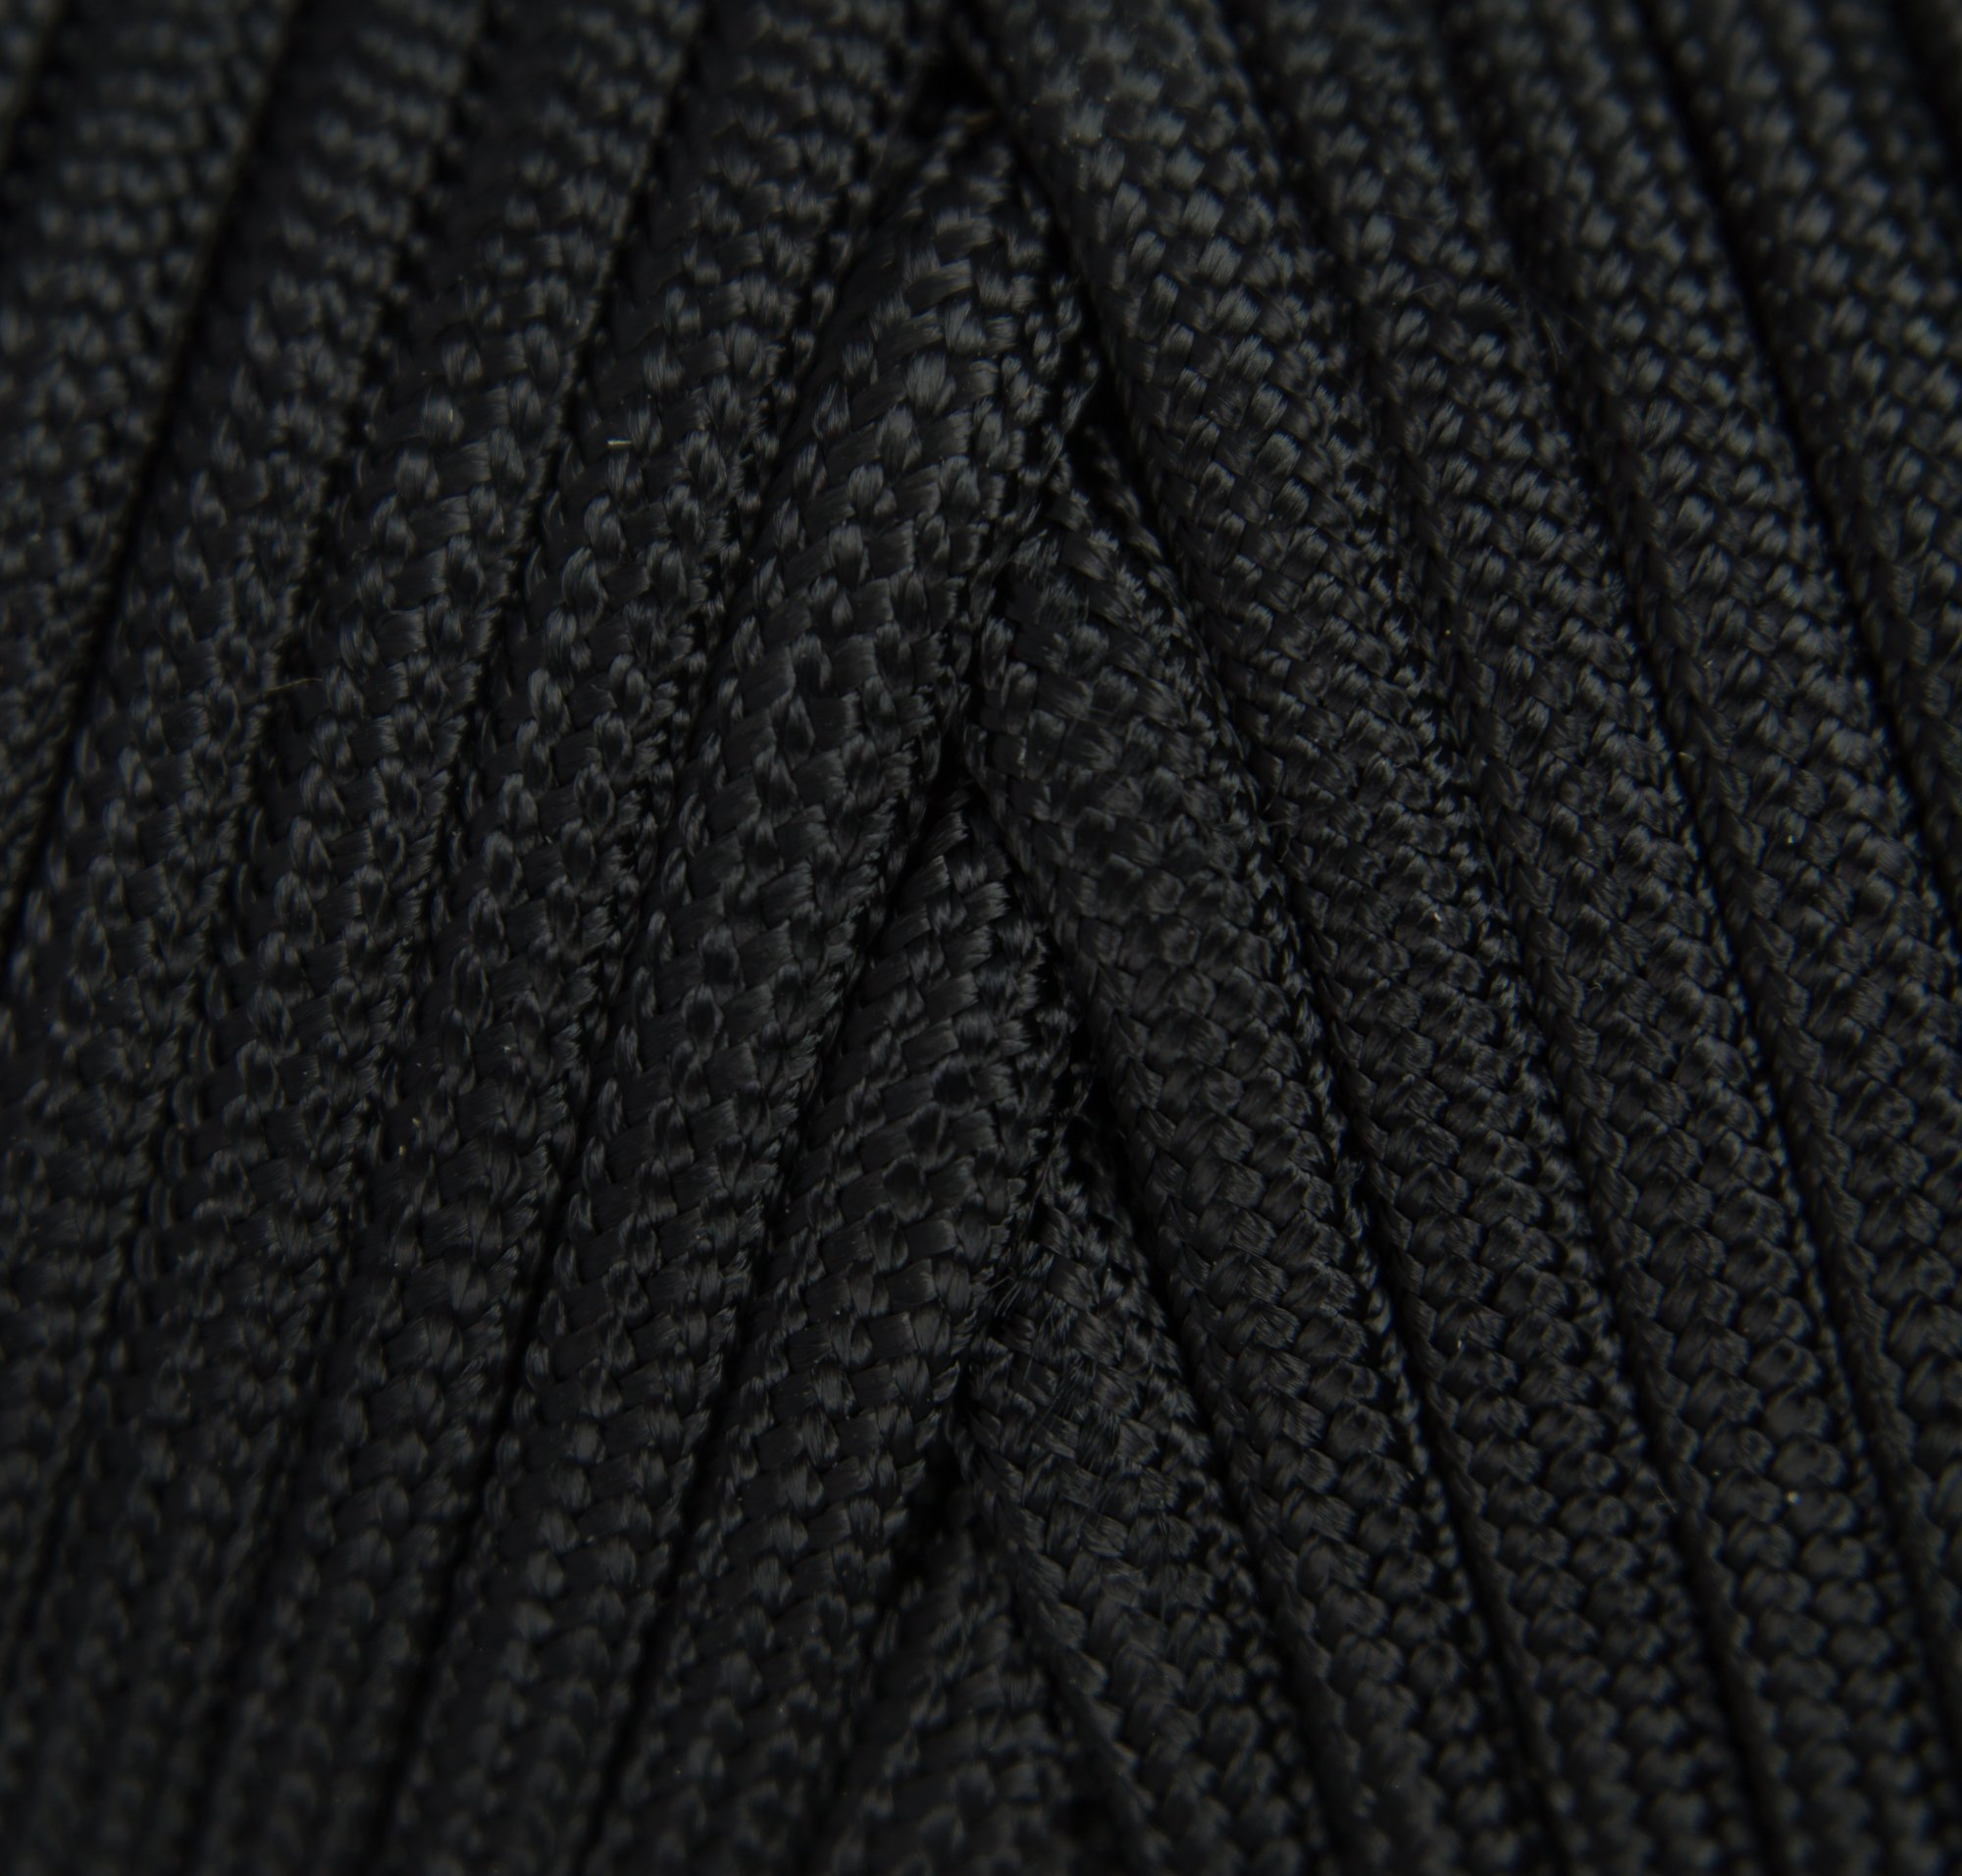 TOUGH-GRID 750lb Black Paracord/Parachute Cord - Genuine Mil Spec Type IV 750lb Paracord Used by The US Military (MIl-C-5040-H) - 100% Nylon - Made in The USA. 50Ft. - Black by TOUGH-GRID (Image #3)